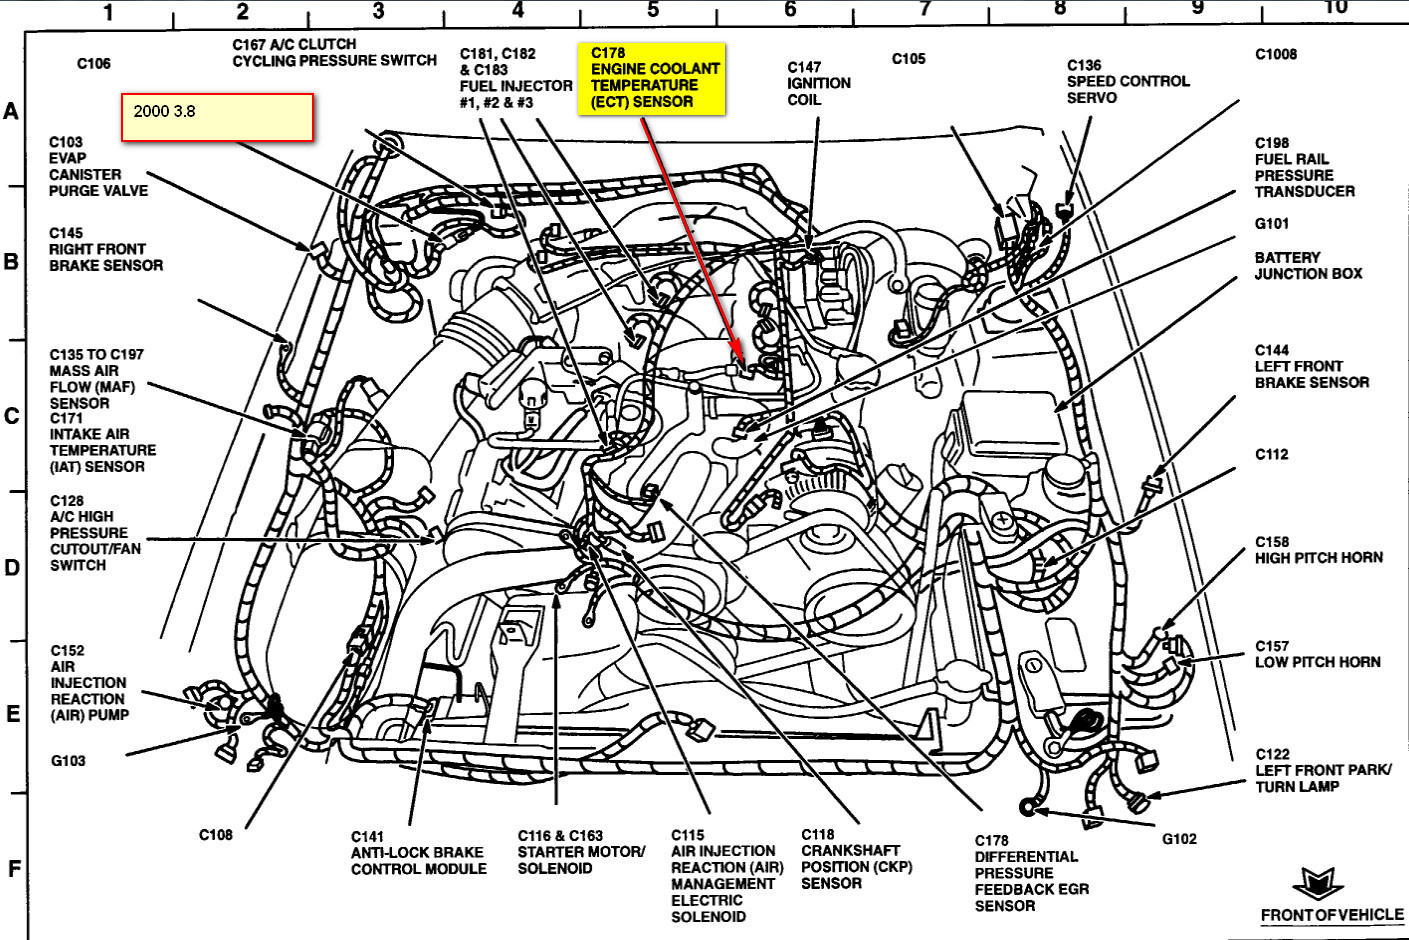 Discussion T39672 ds551250 on car alarm circuit diagram